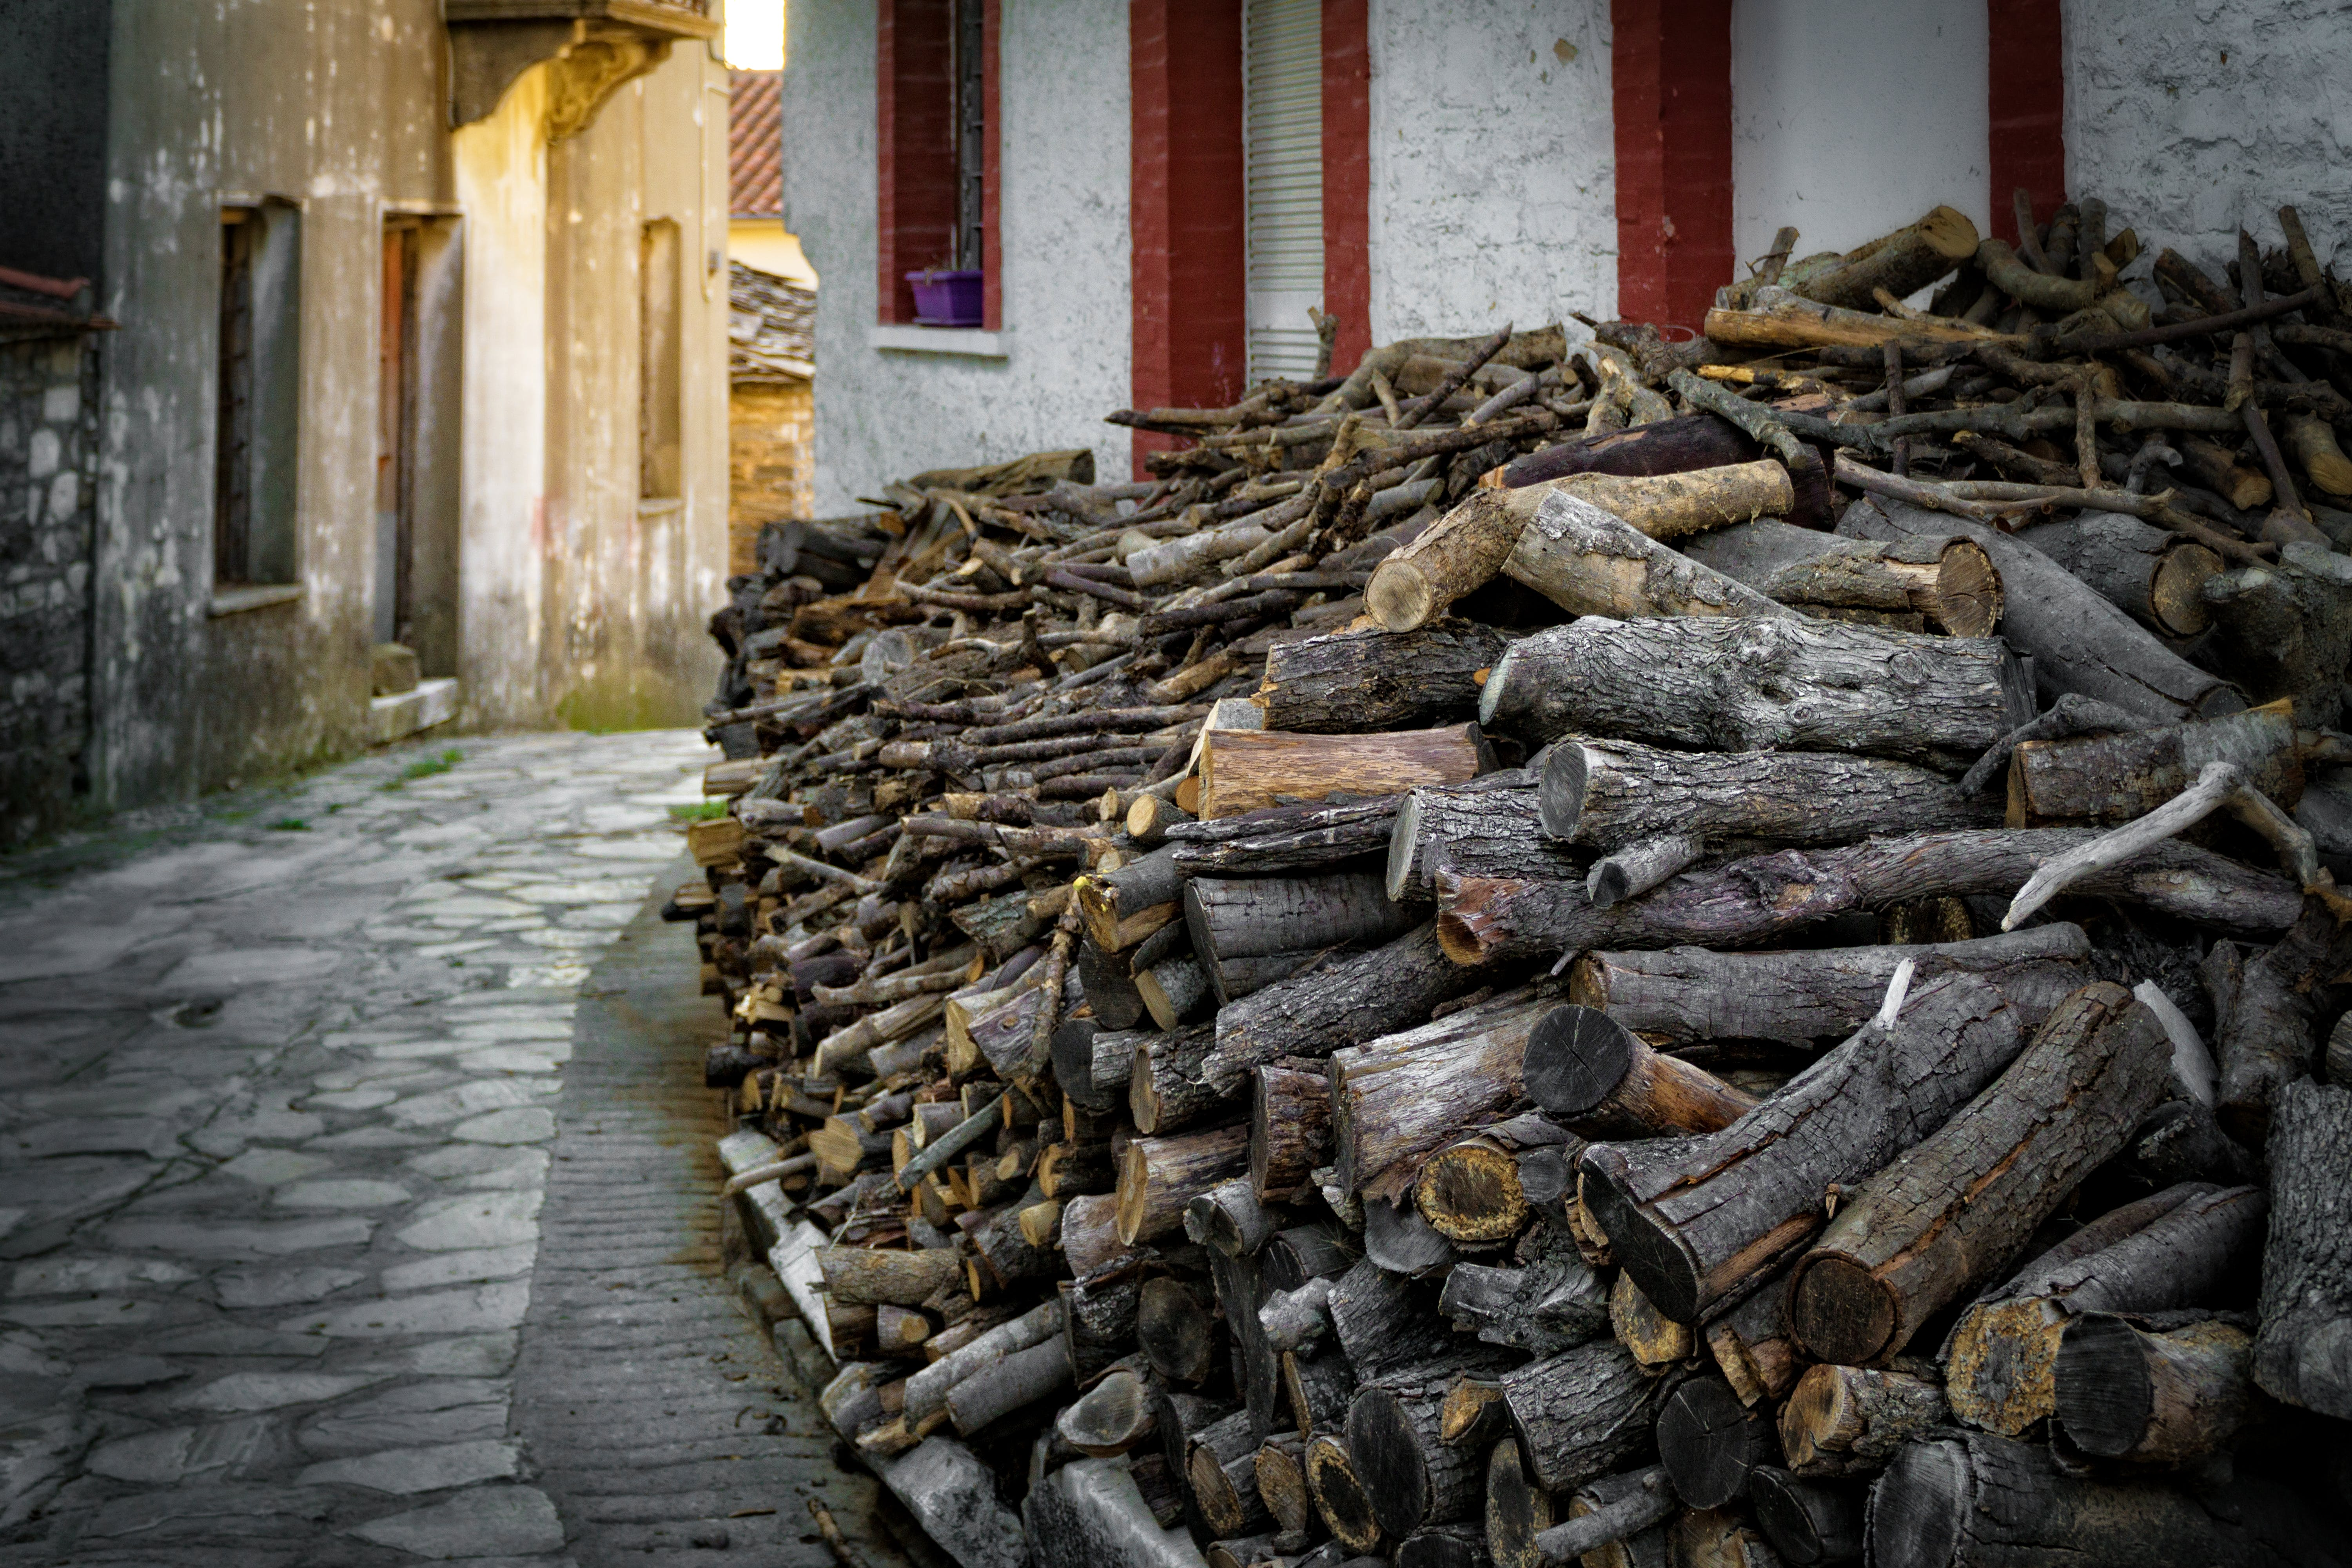 Pile of Firewood Beside Concrete Building and Alleyway